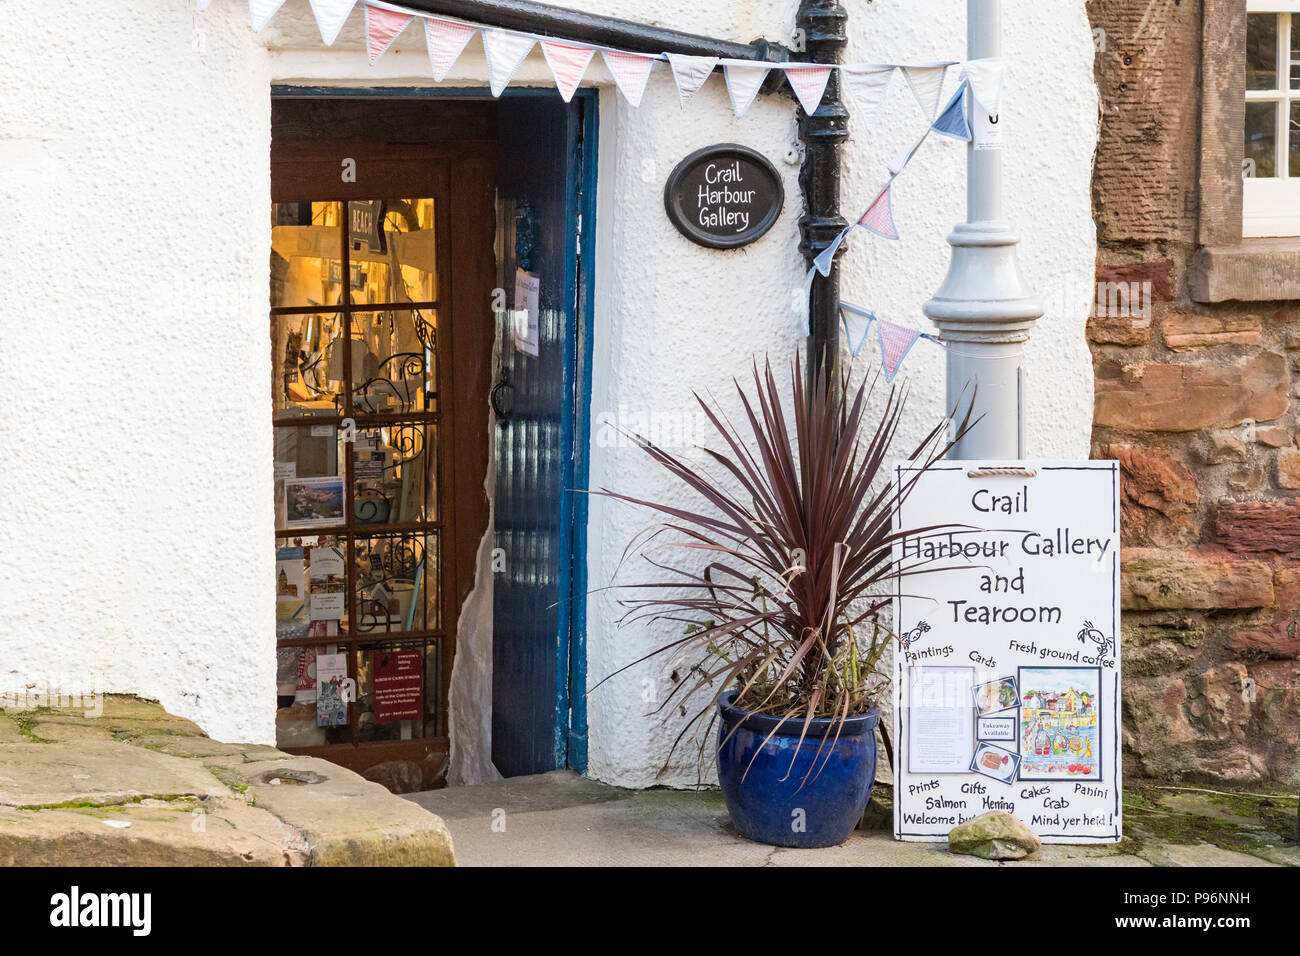 Crail Harbour Gallery and Tearoom, Crail, Fife, Scotland, UK - Stock Image